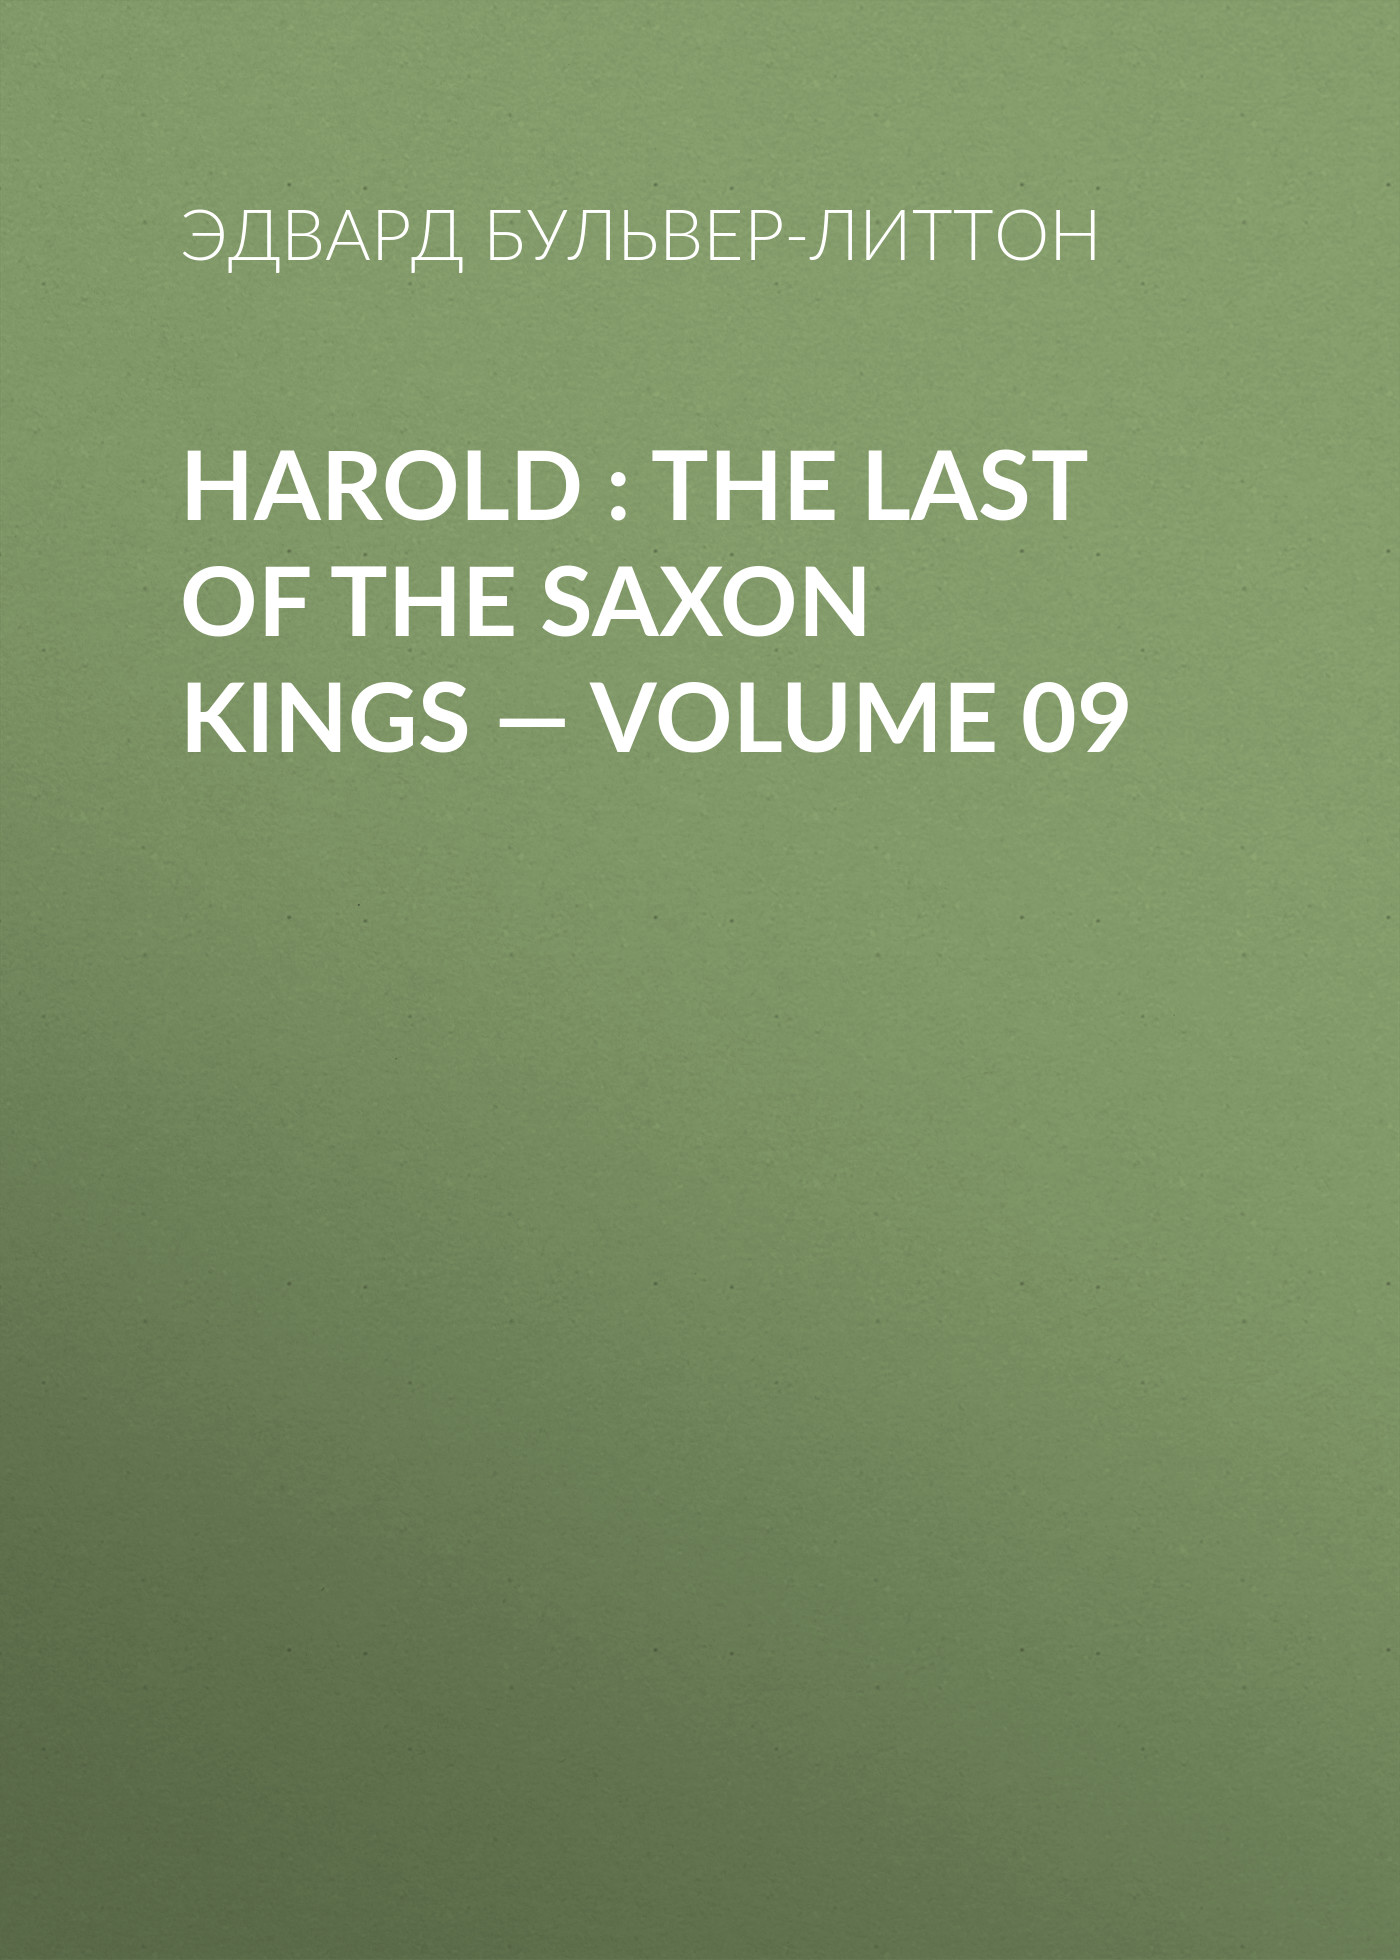 Эдвард Бульвер-Литтон Harold : the Last of the Saxon Kings — Volume 09 эдвард бульвер литтон harold the last of the saxon kings volume 10